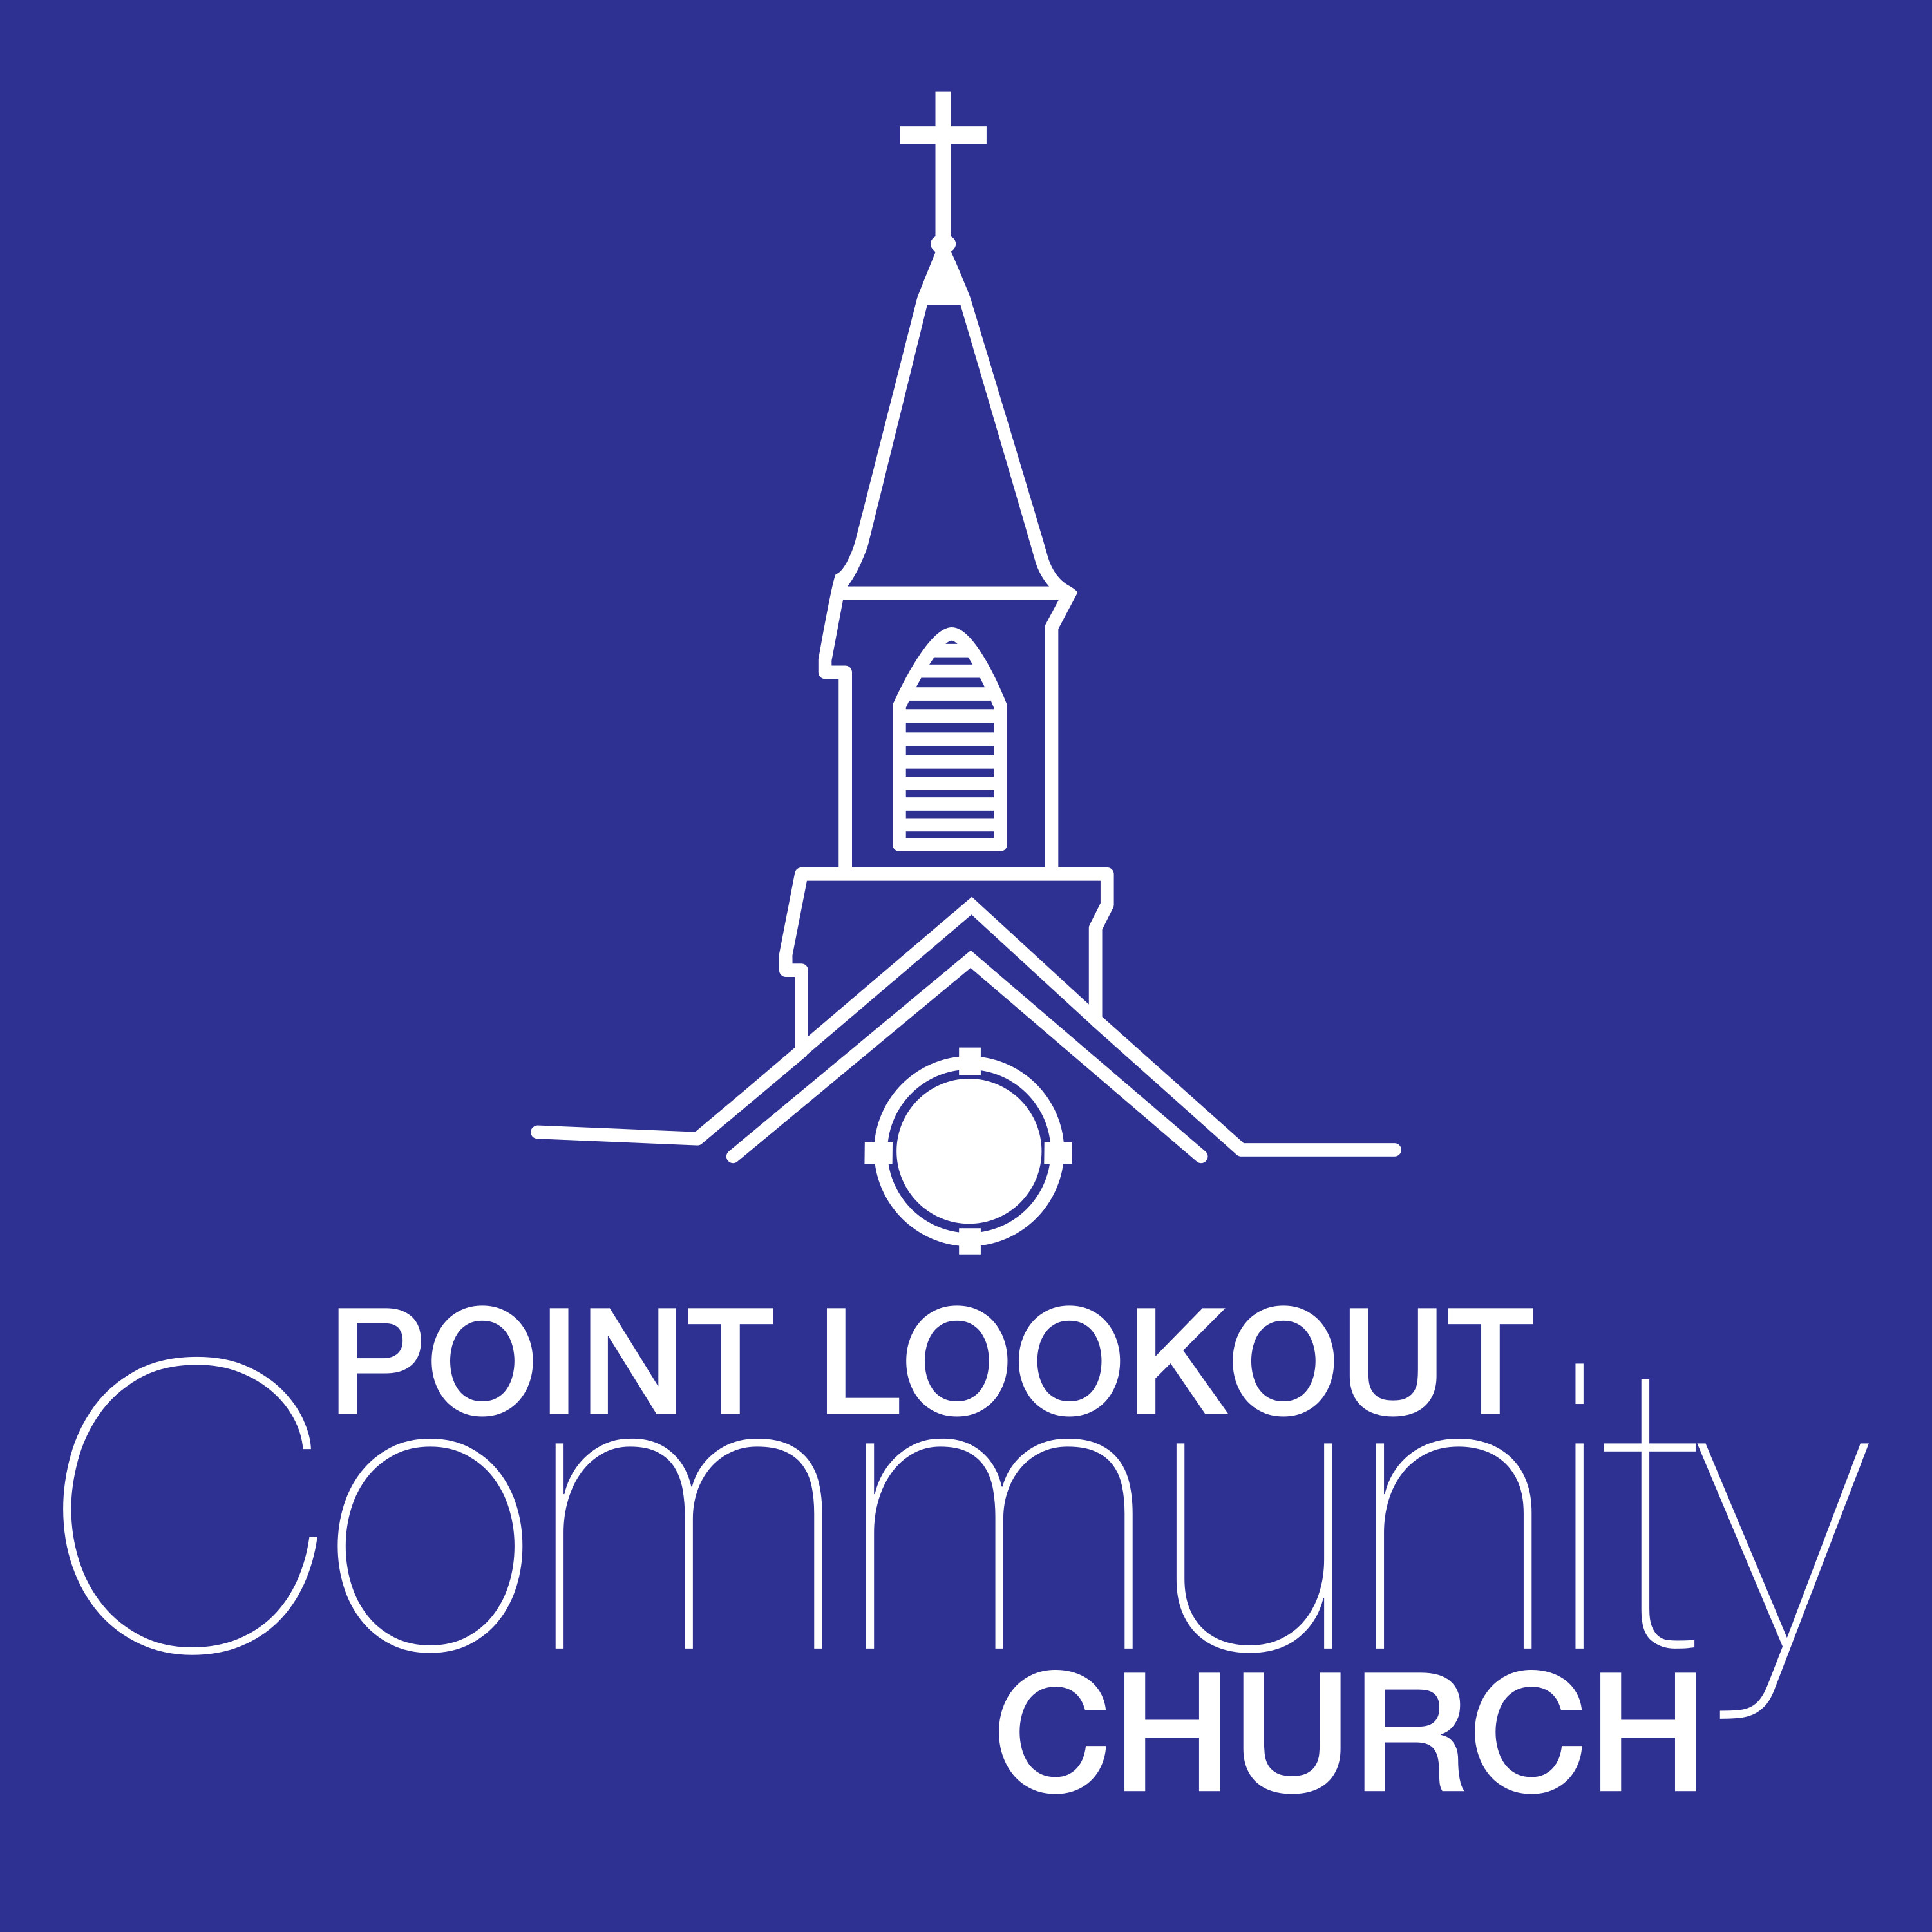 The Point Lookout Community Church